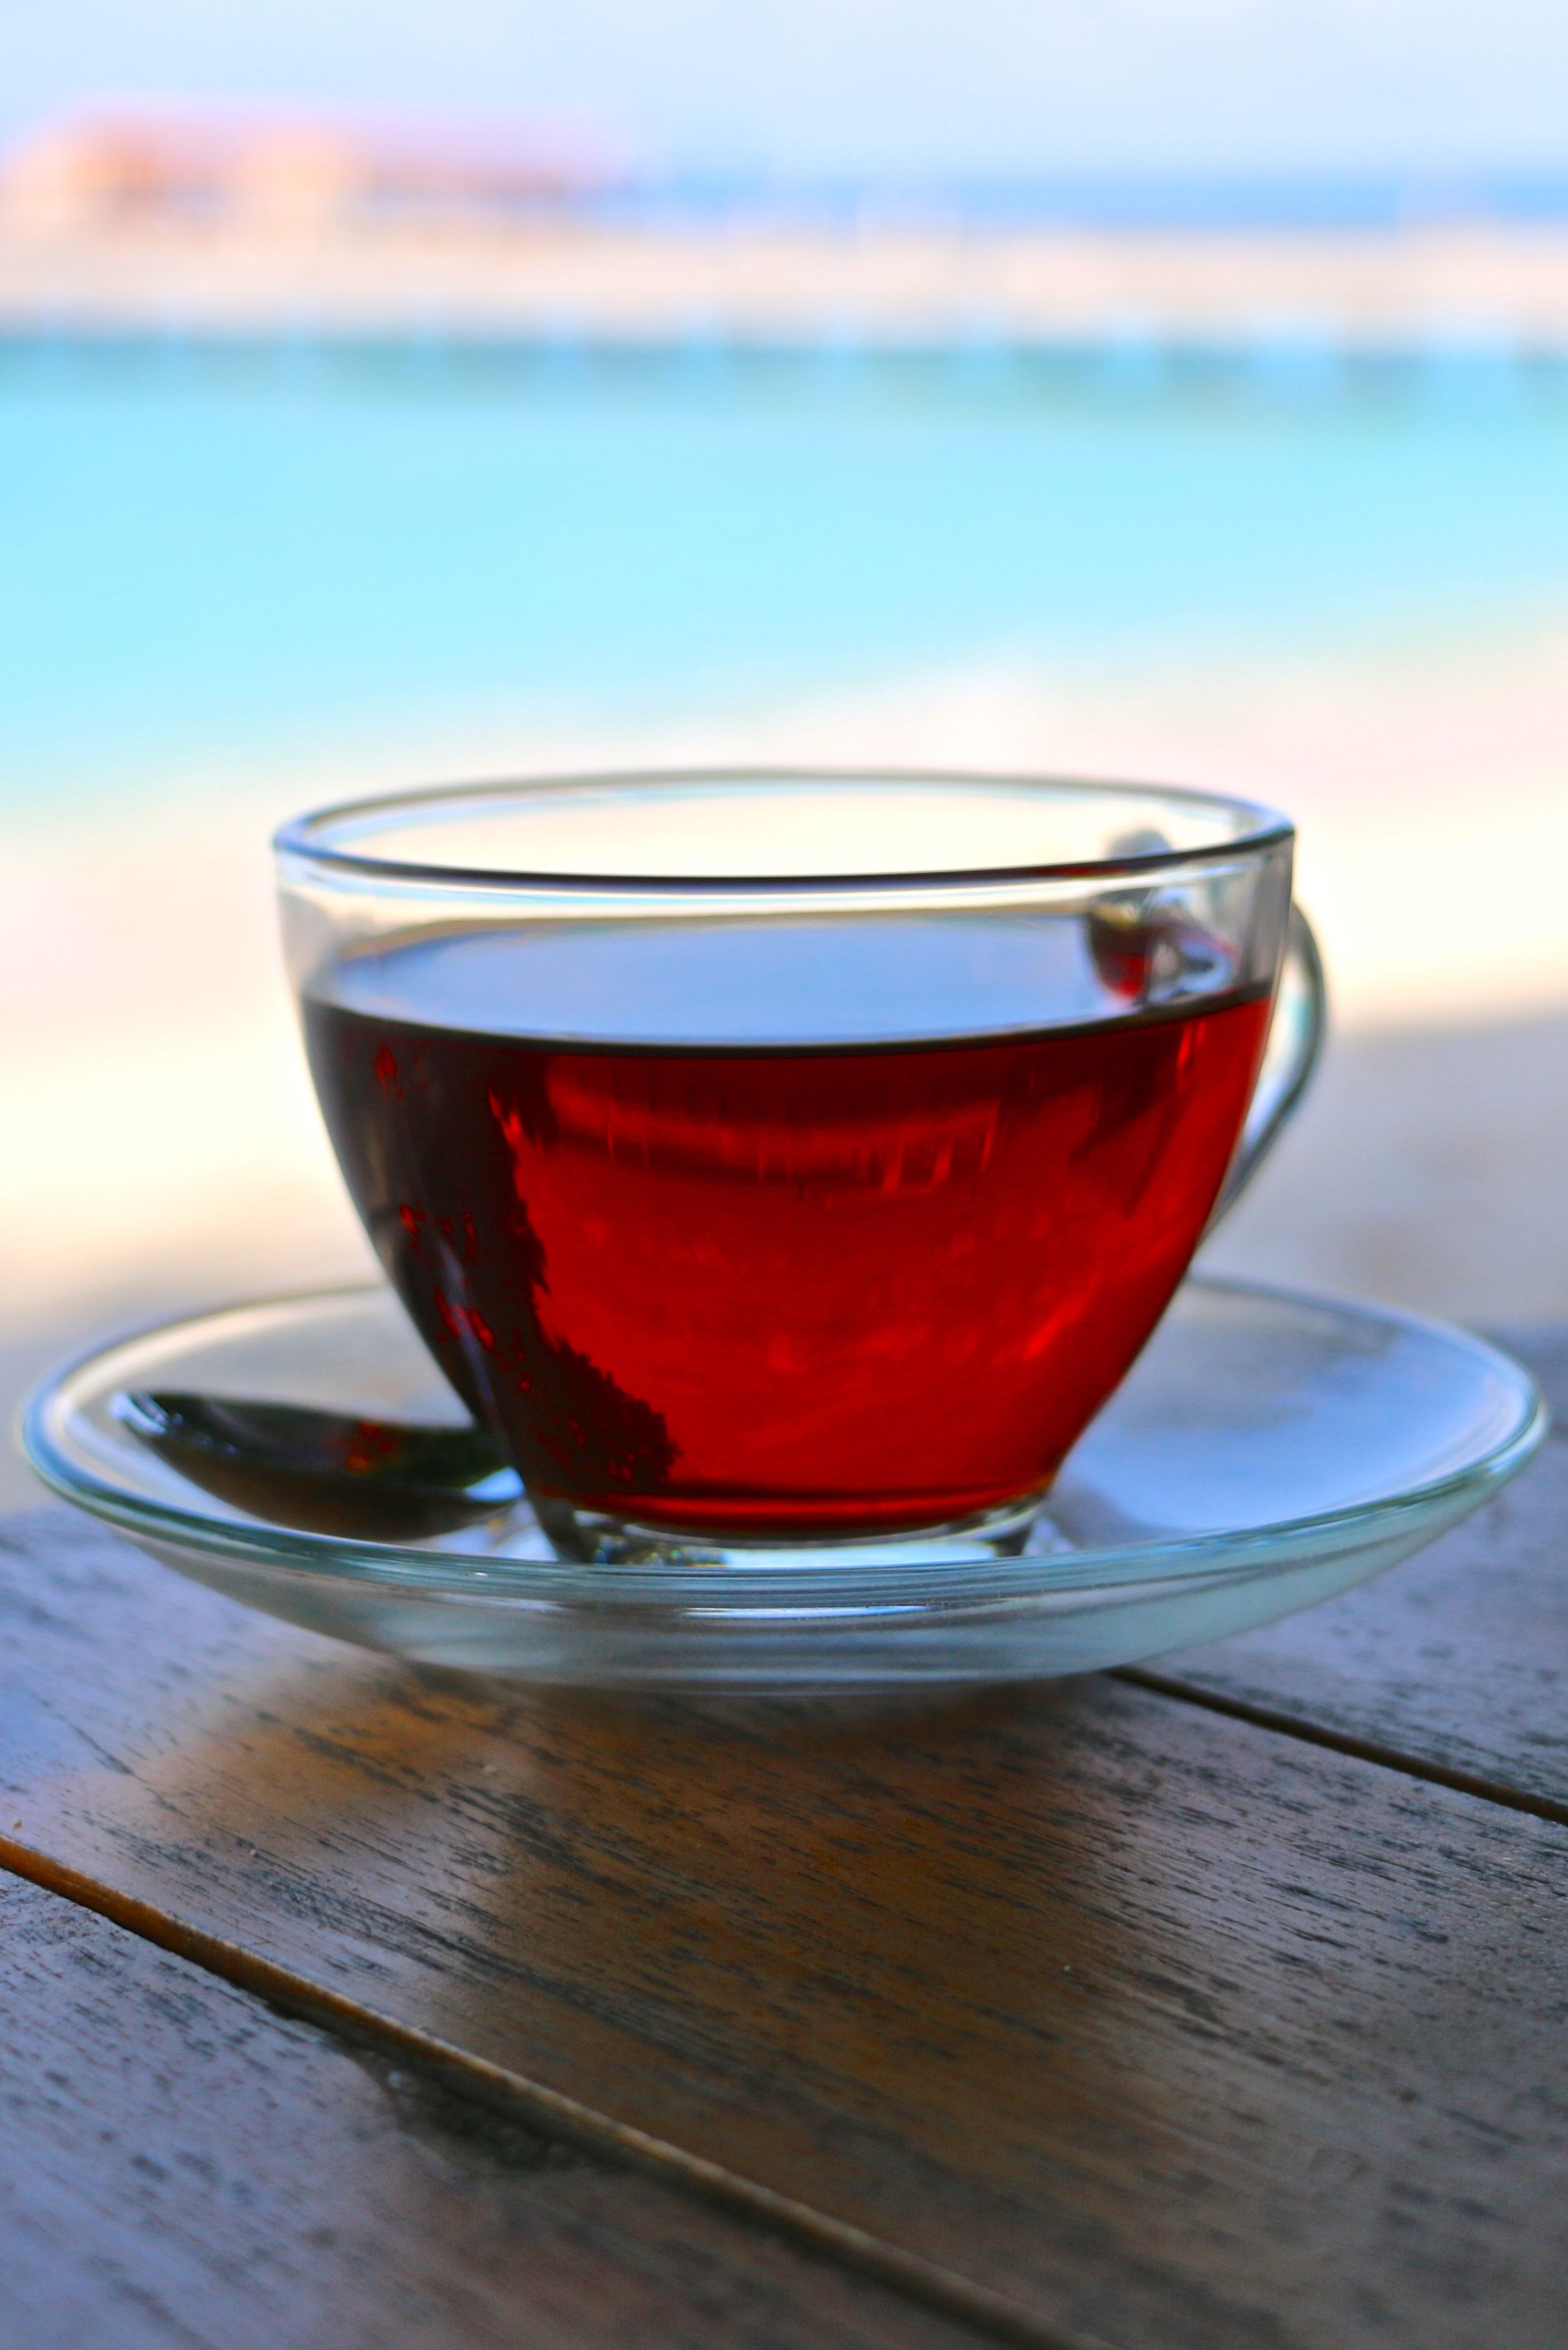 In Maldives Local People Usually Drink Black Tea From Sri Lanka It Is Very Hard To Find Green Tea Or Other Types This Around The World Food Discover Food Eat